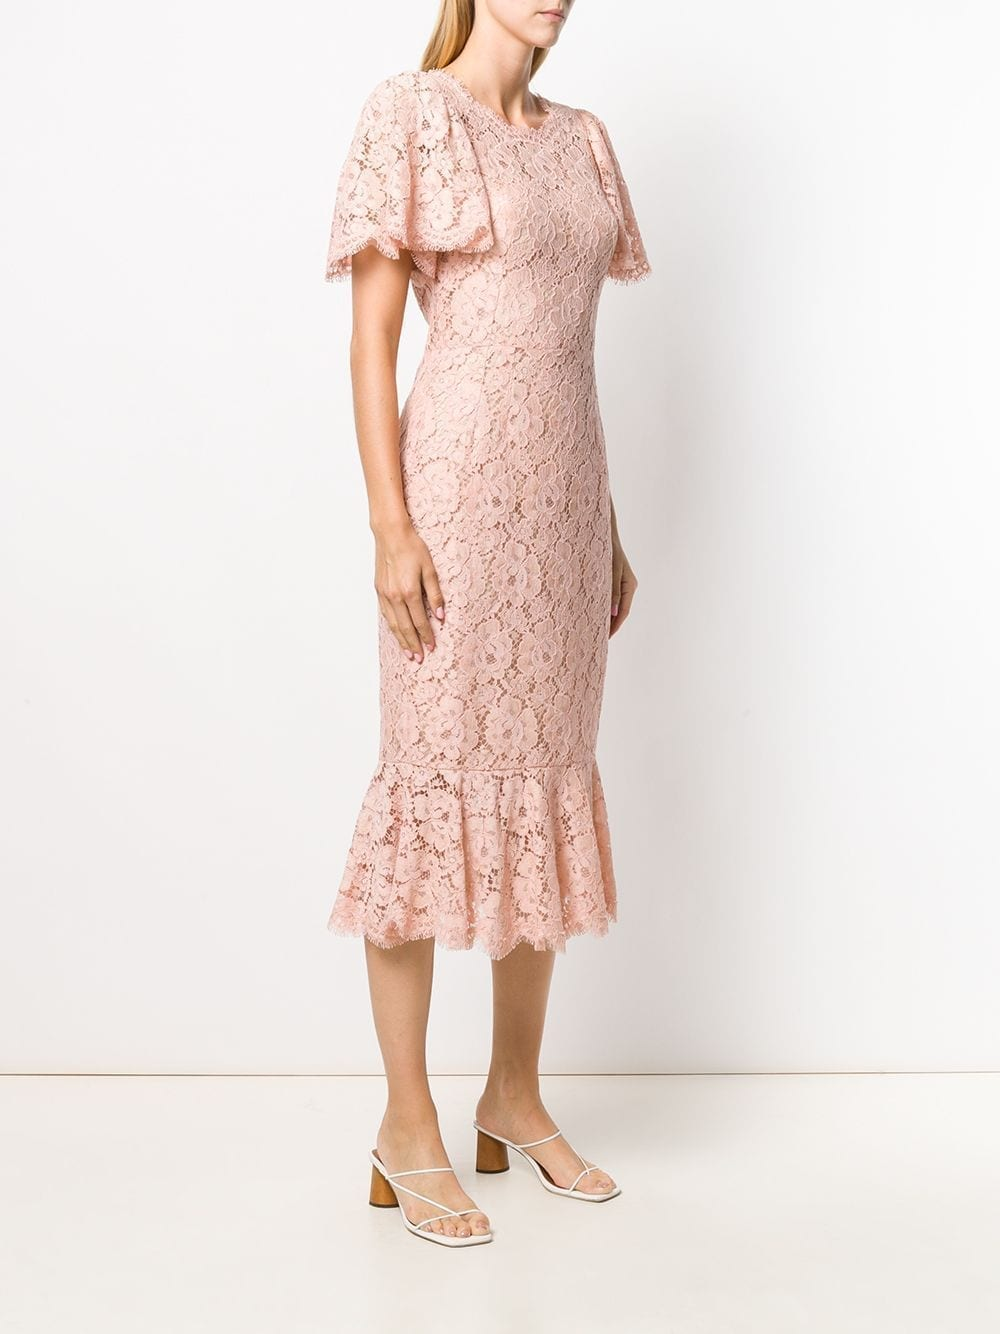 DOLCE & GABBANA Floral Lace Fitted Dress